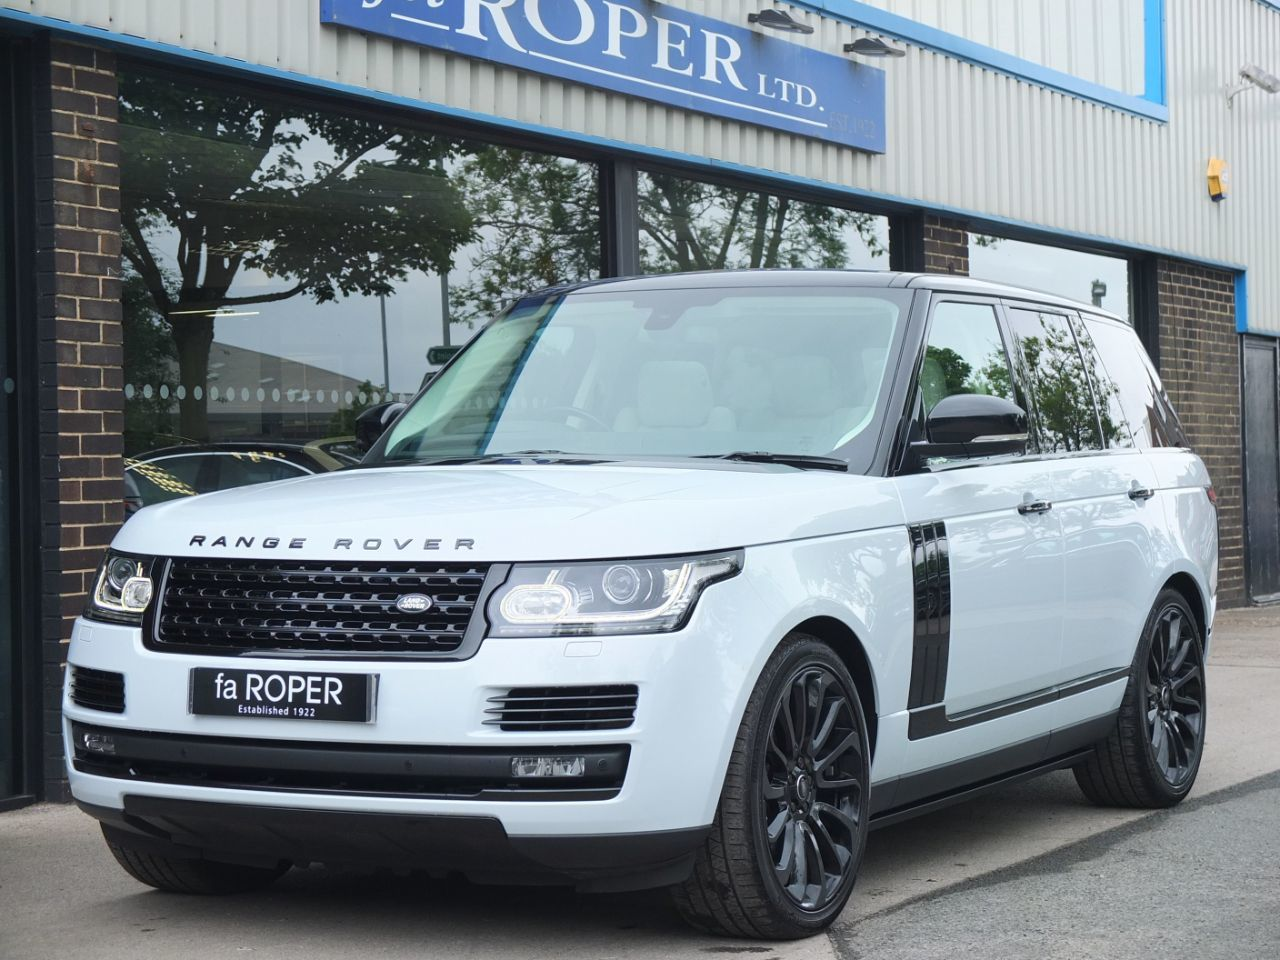 Land Rover Range Rover 3.0 TDV6 Vogue Auto Black Design Pack Estate Diesel Yulong White Metallic